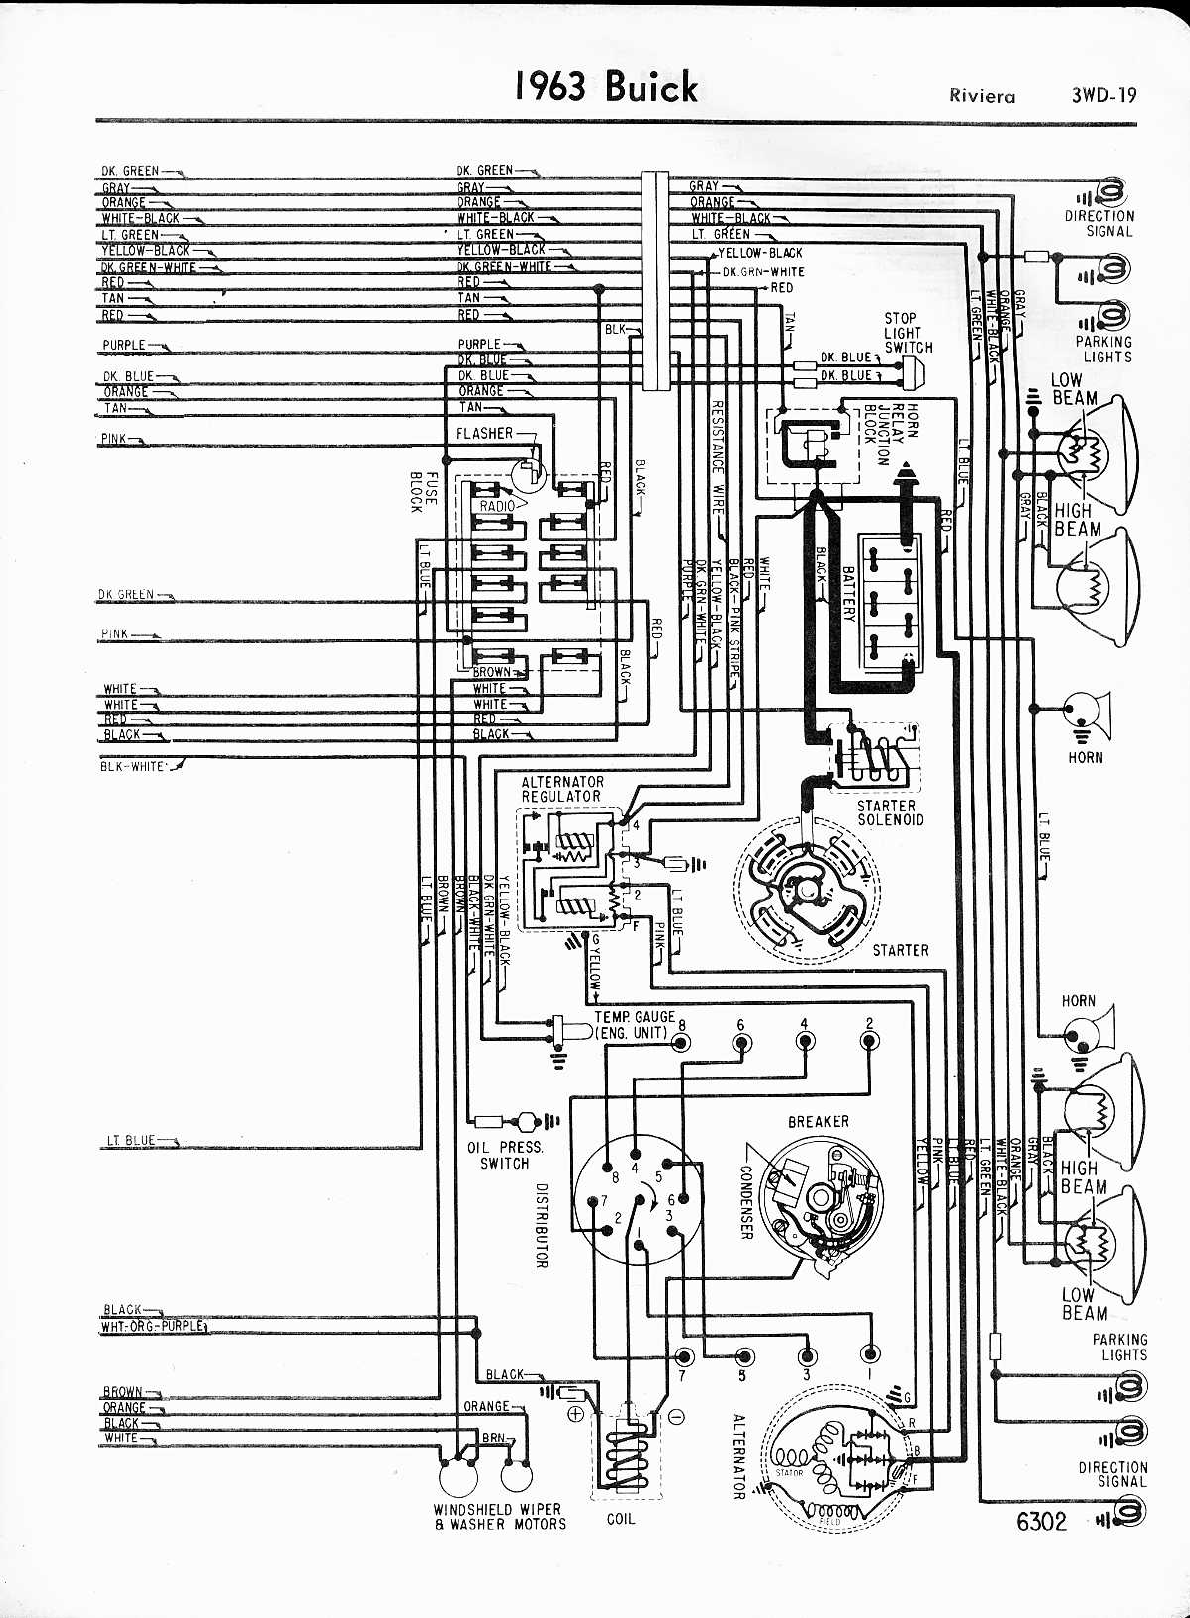 buick riviera 1963 1965 misc documents wiring diagrams pdf rh manuals co 2002 Buick Park Avenue Wiring-Diagram 2000 Buick LeSabre Wiring-Diagram